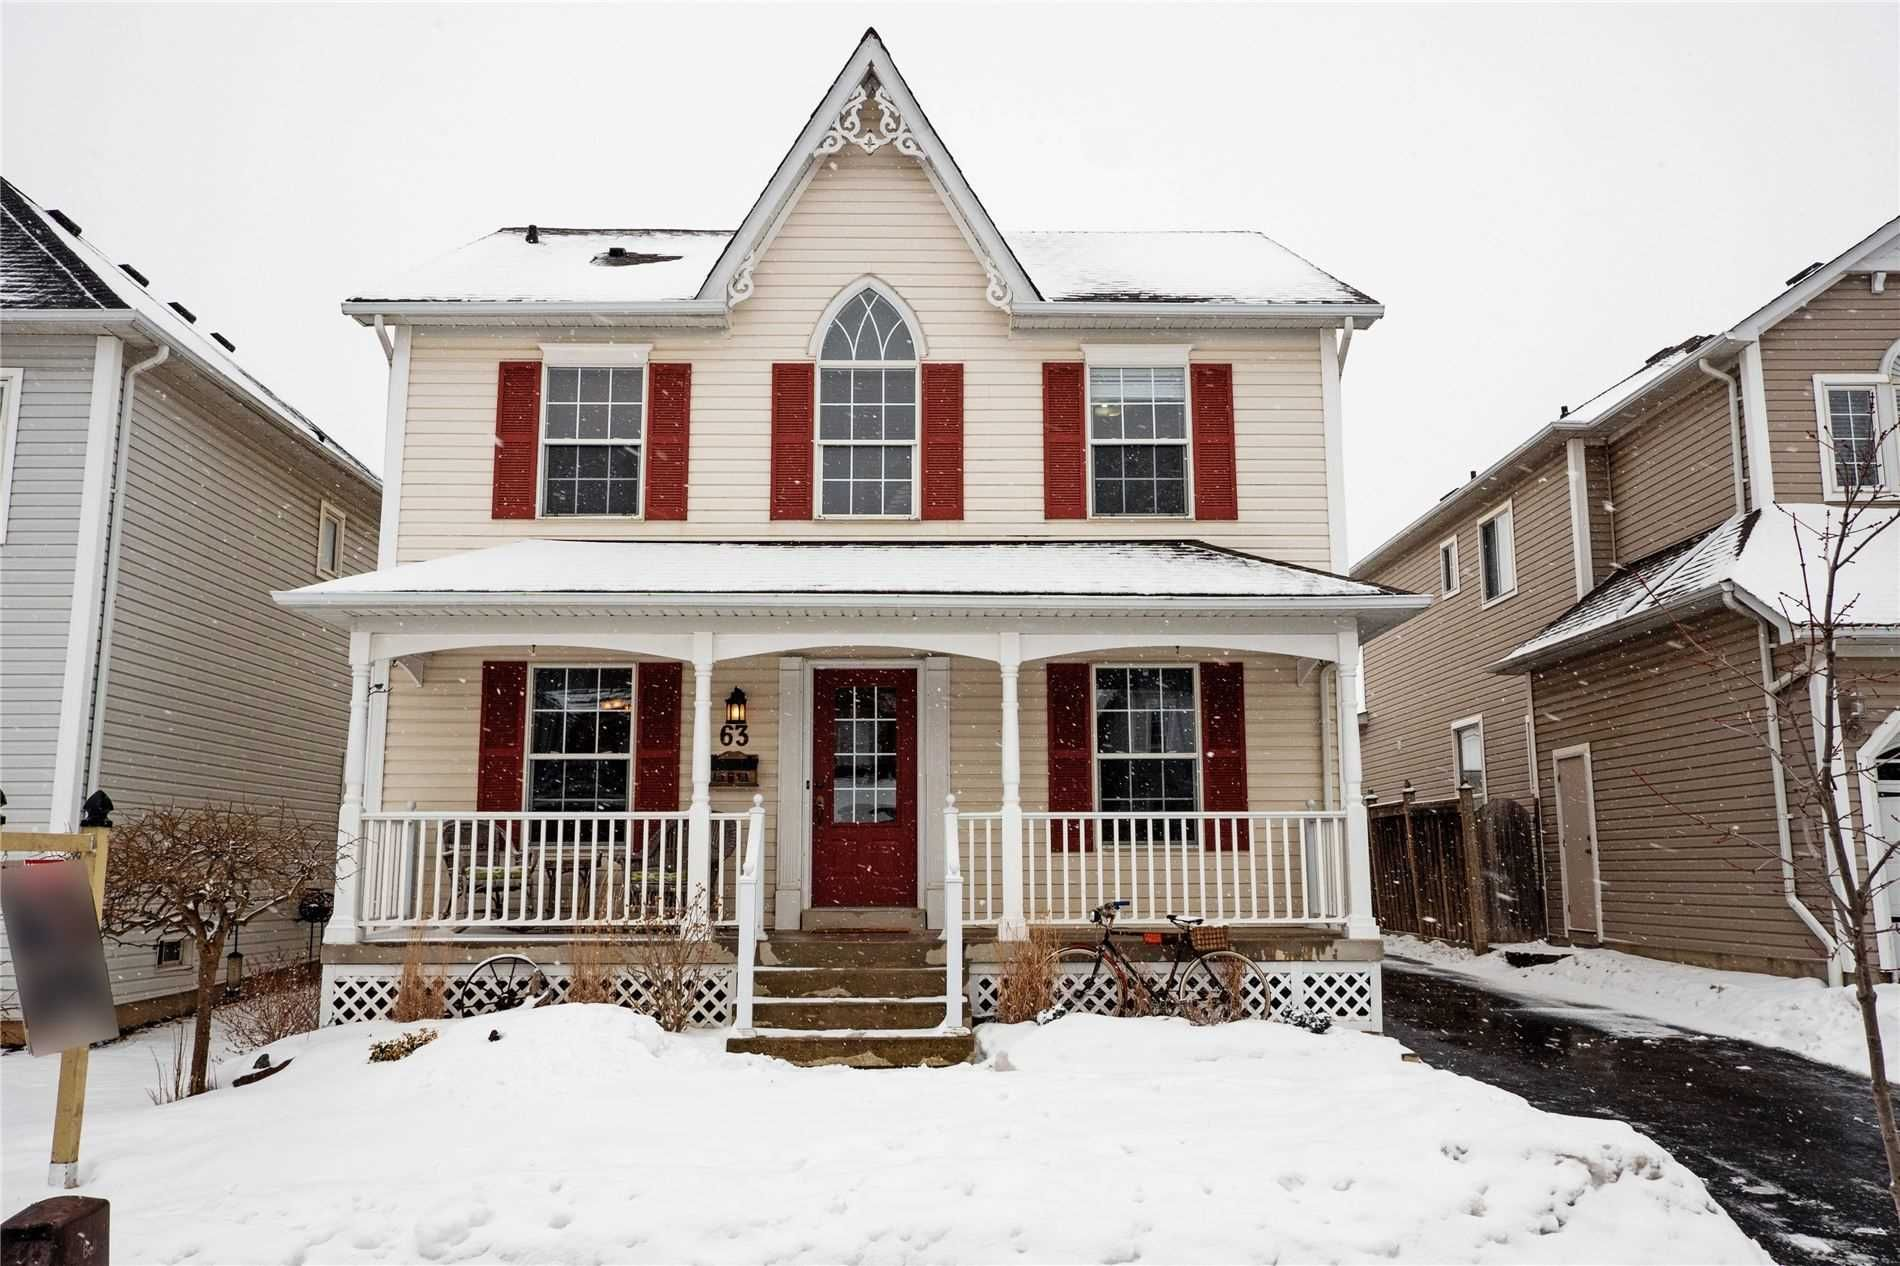 Main Photo: 63 Carson Avenue in Whitby: Brooklin House (2-Storey) for sale : MLS®# E4703423